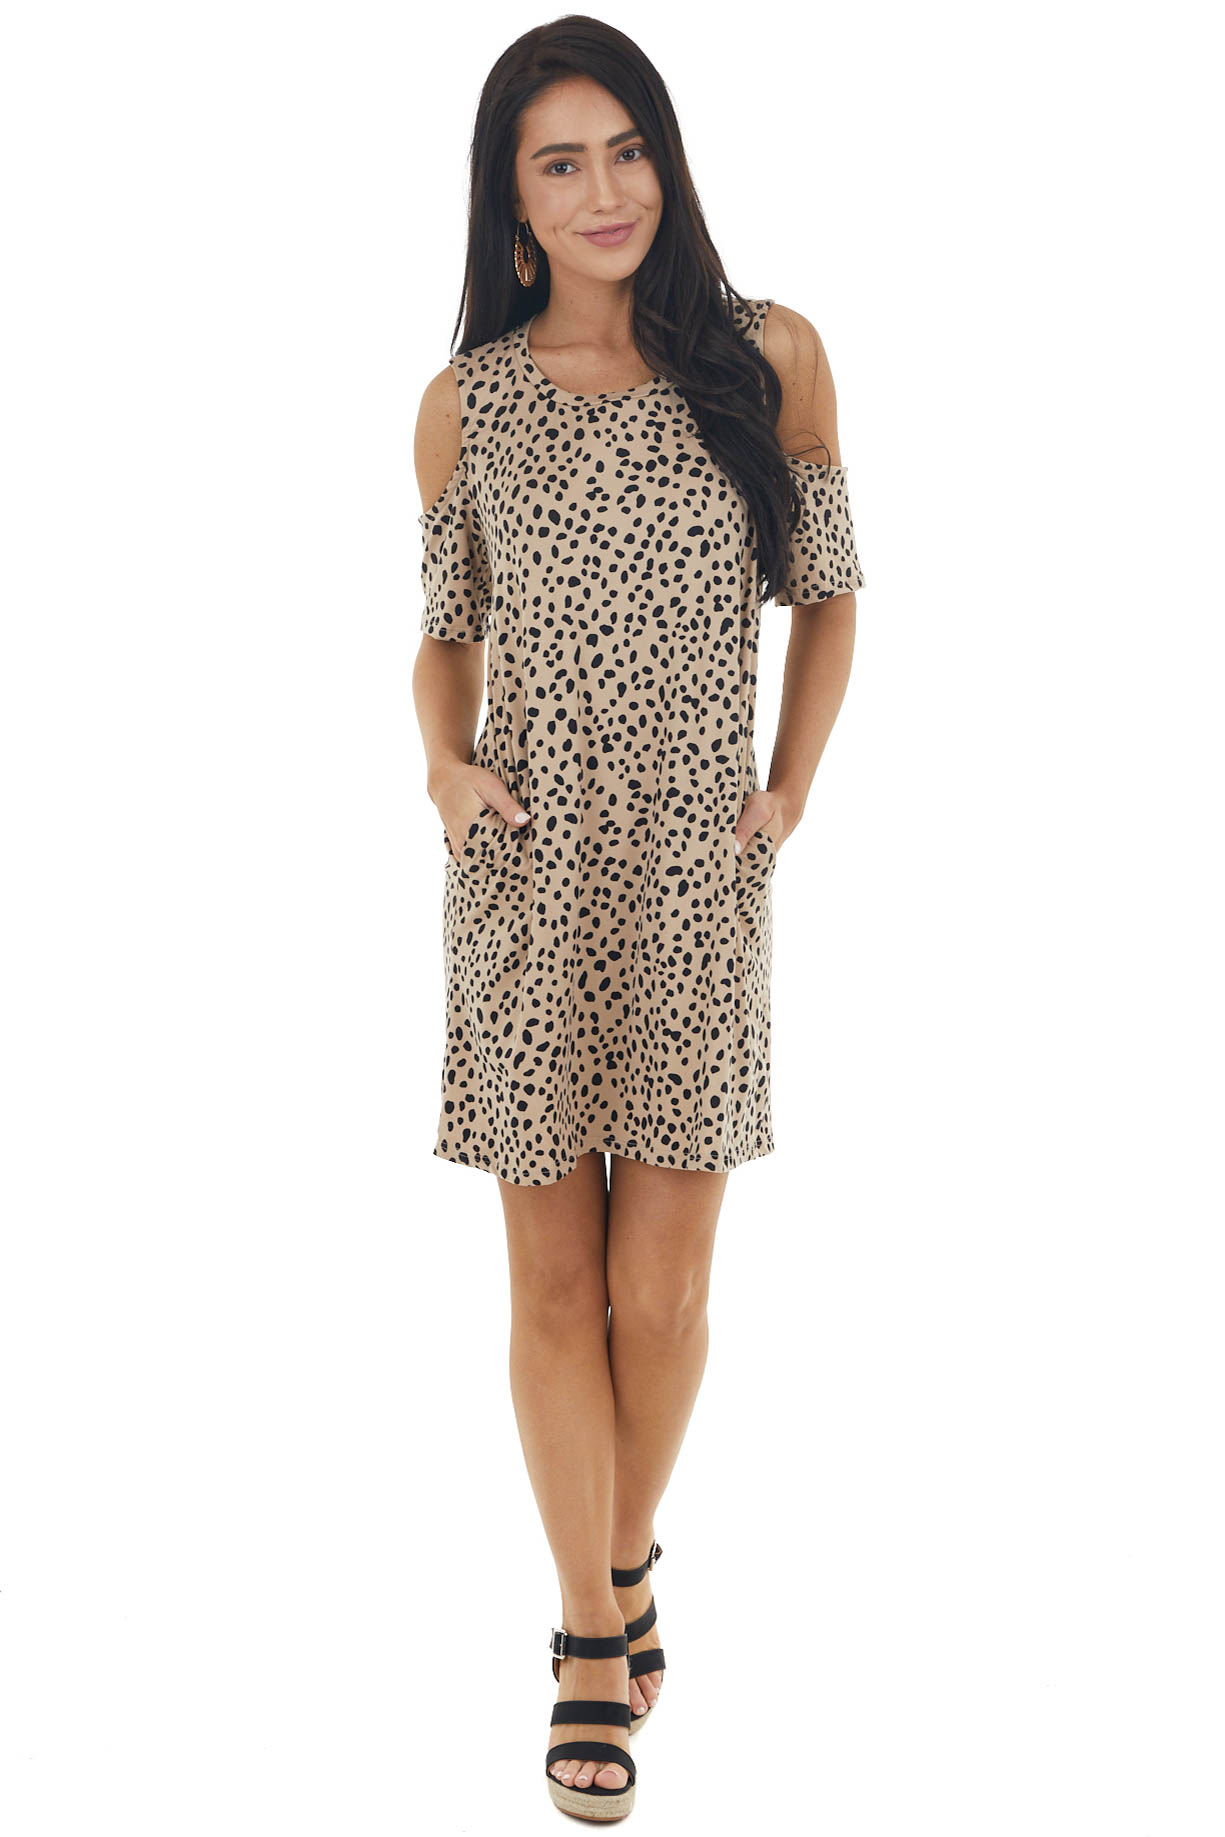 Rich Latte Cheetah Print Cold Shoulder Short Sleeve Dress